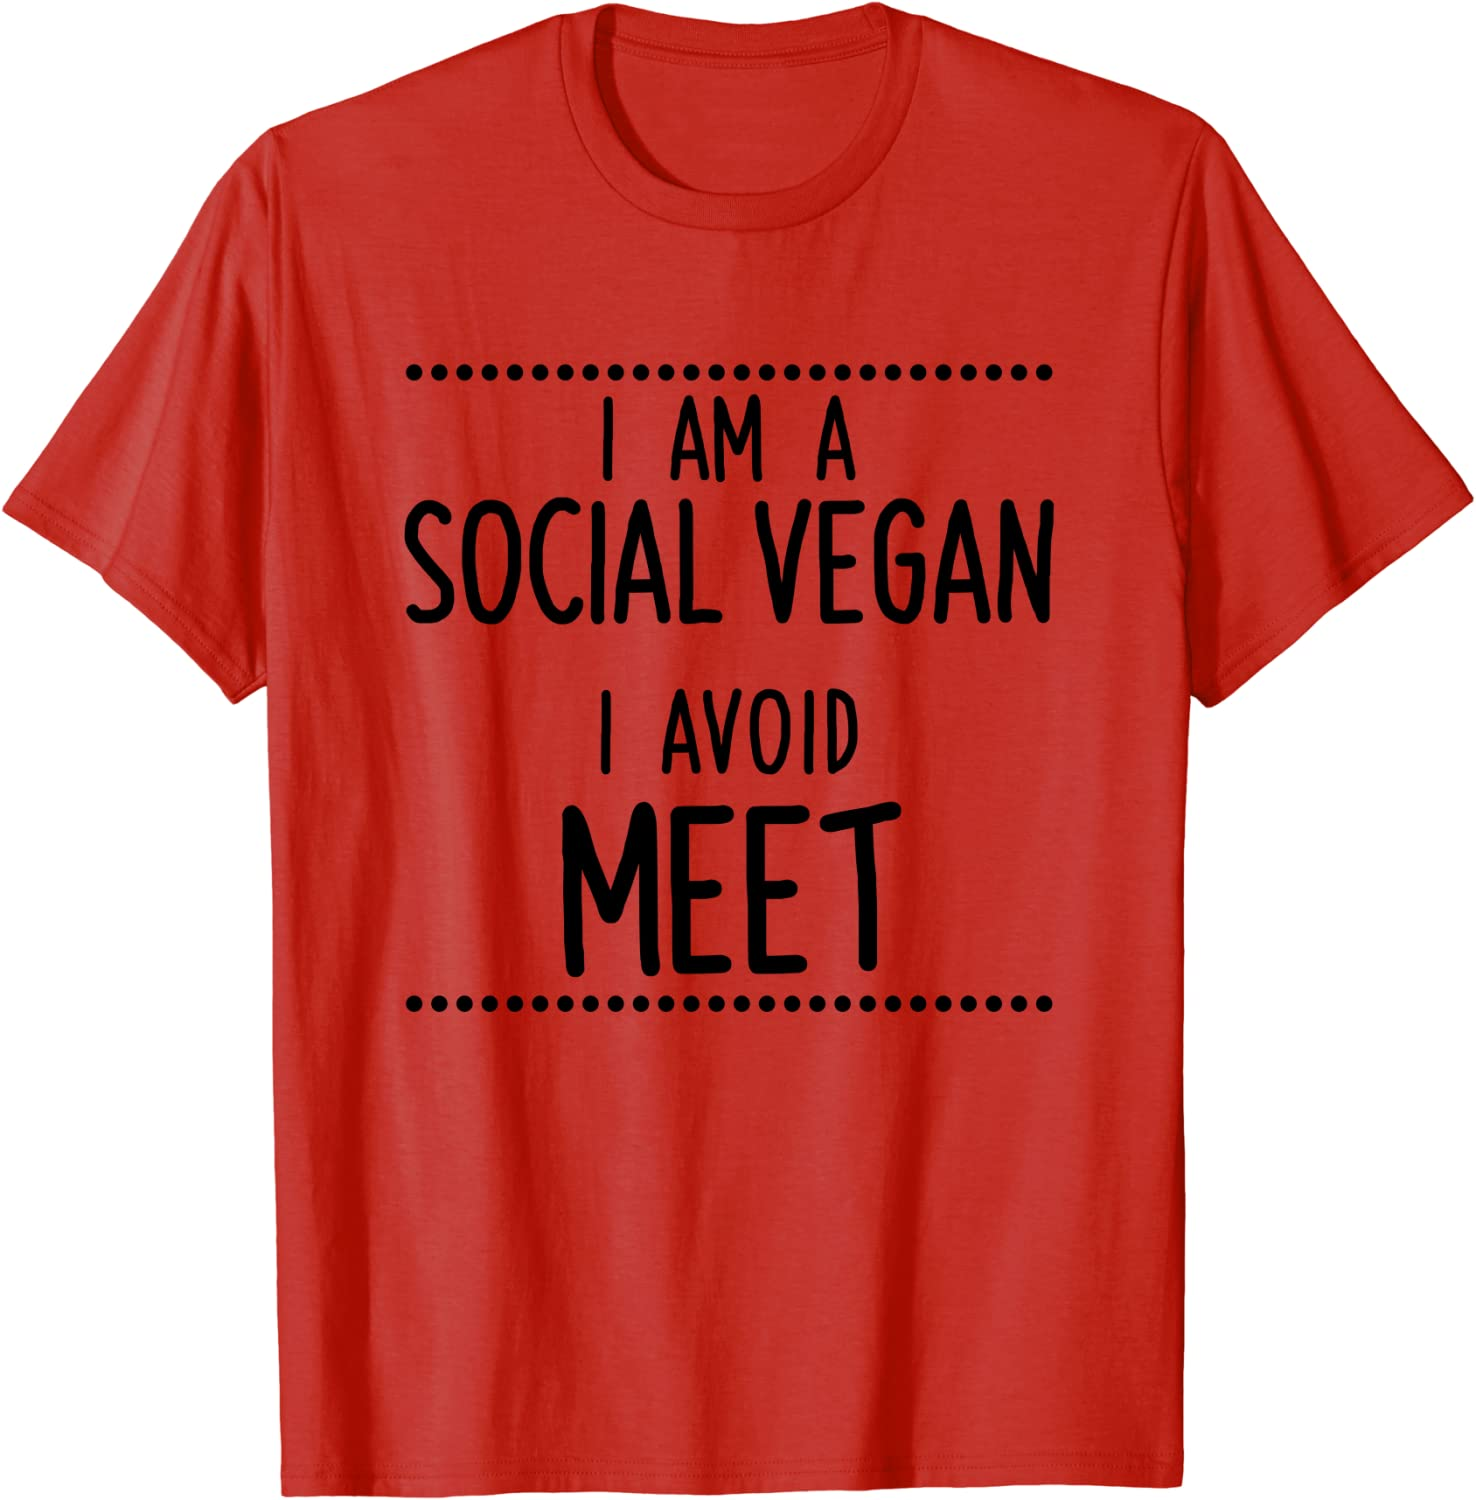 I avoid meet Svg Silhouette Cricut files Antisocial quote Funny introvert shirt Png print files I/'m a social vegan Introvert gift